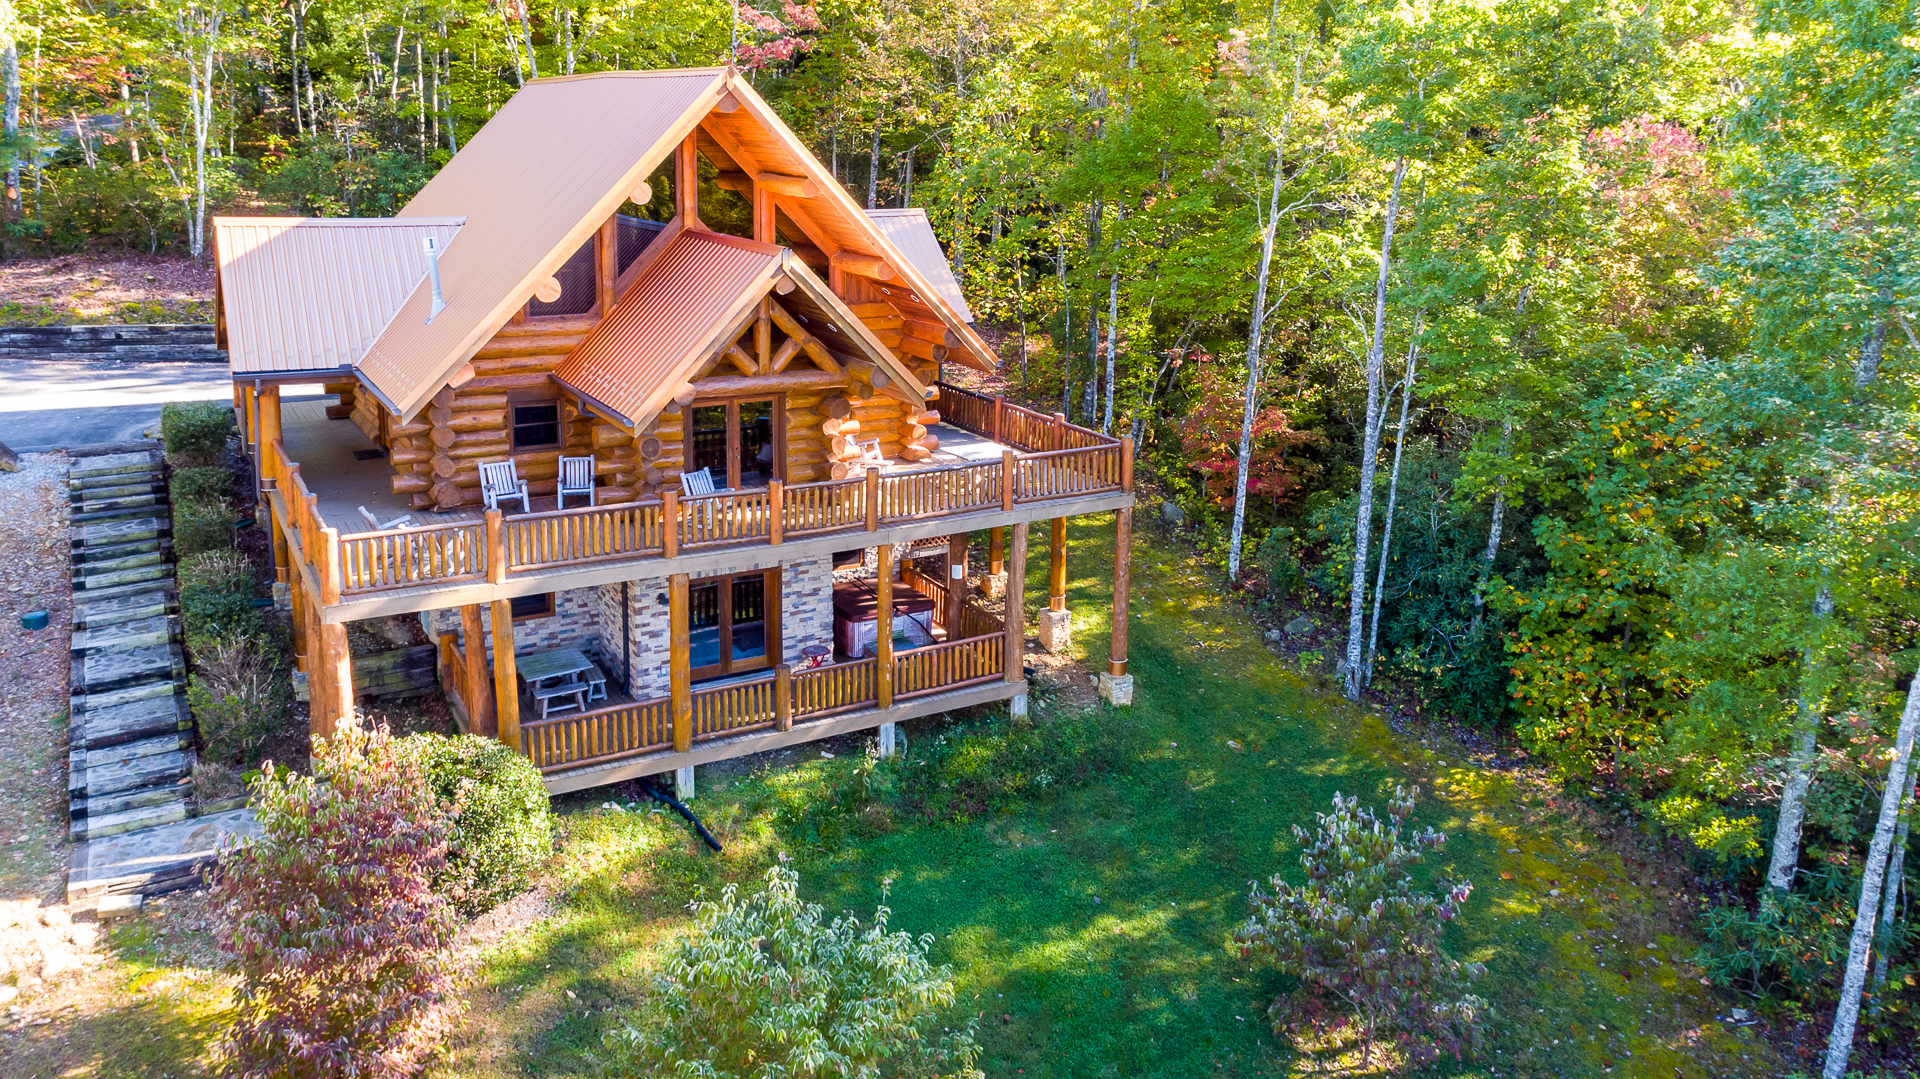 cabins nm mo boat angel rental book br condo site f rentals walk nightly your branson bbq grill vacation fire king in